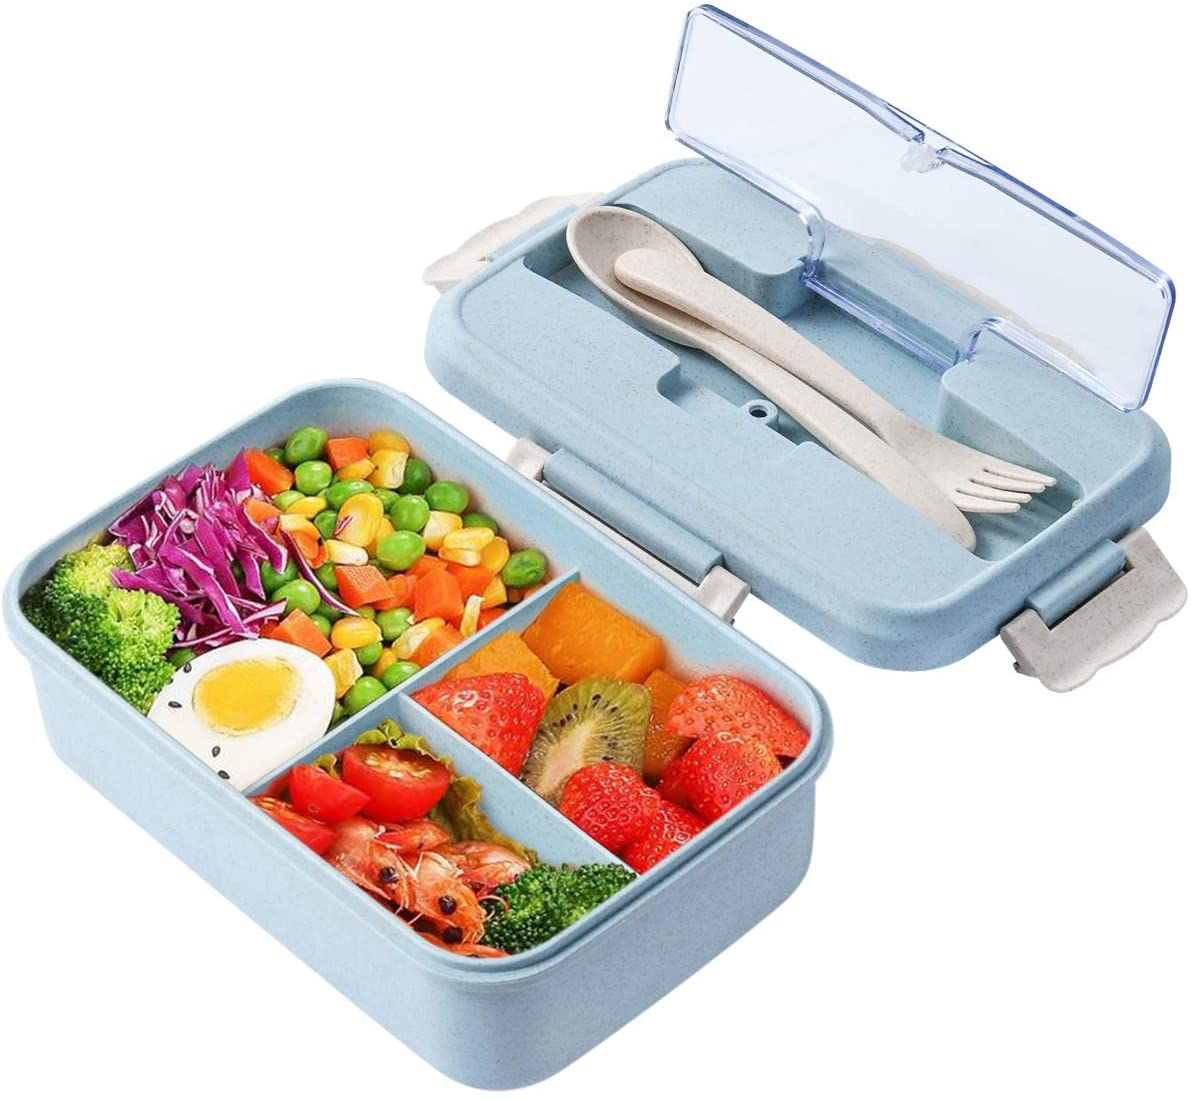 personal meal cool box